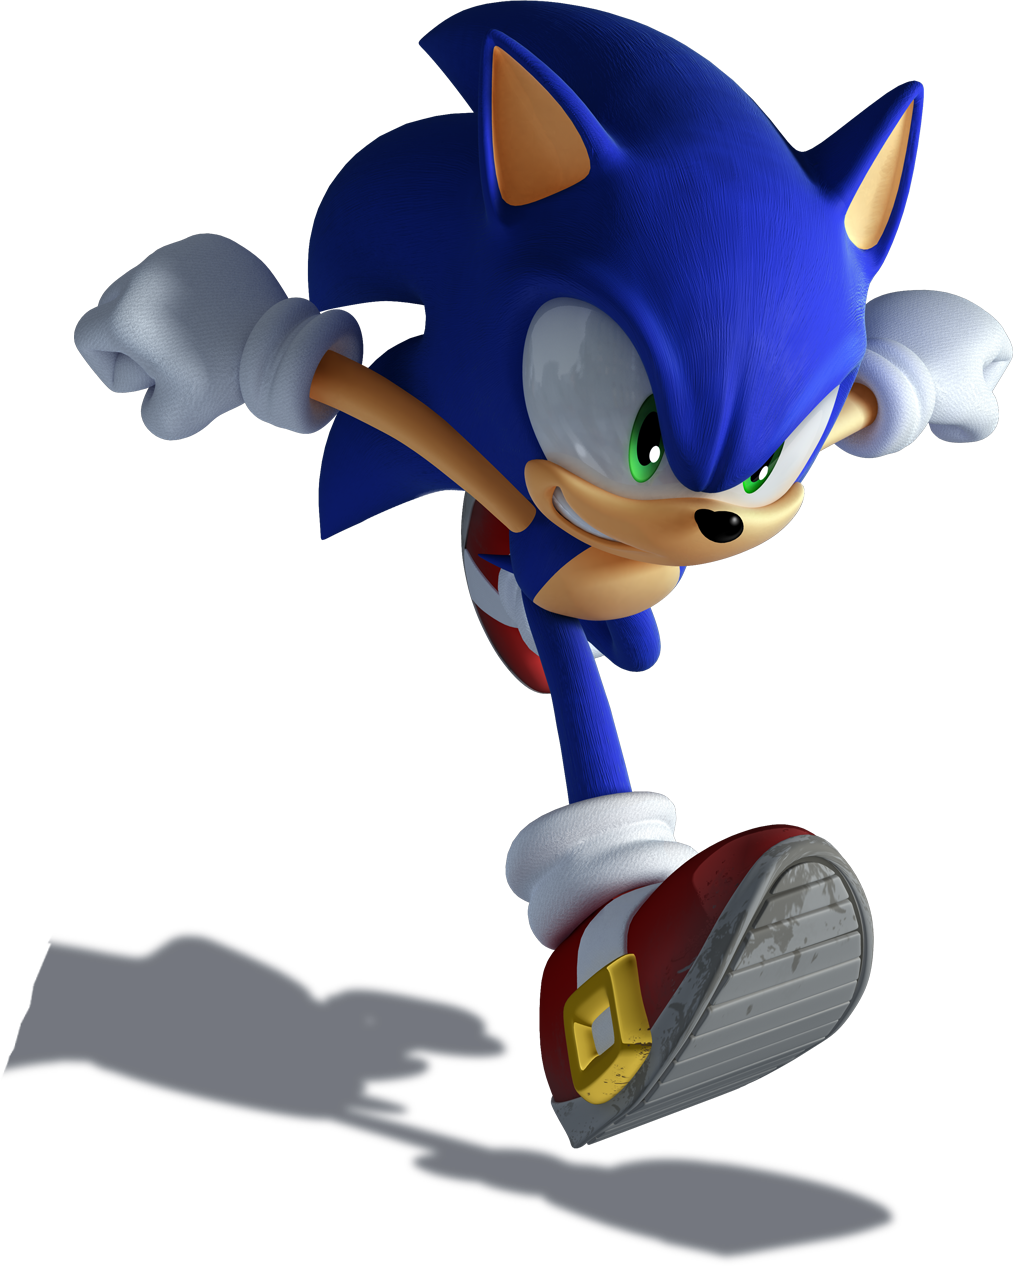 Sonic Png 20650 Free Icons And Png Backgrounds